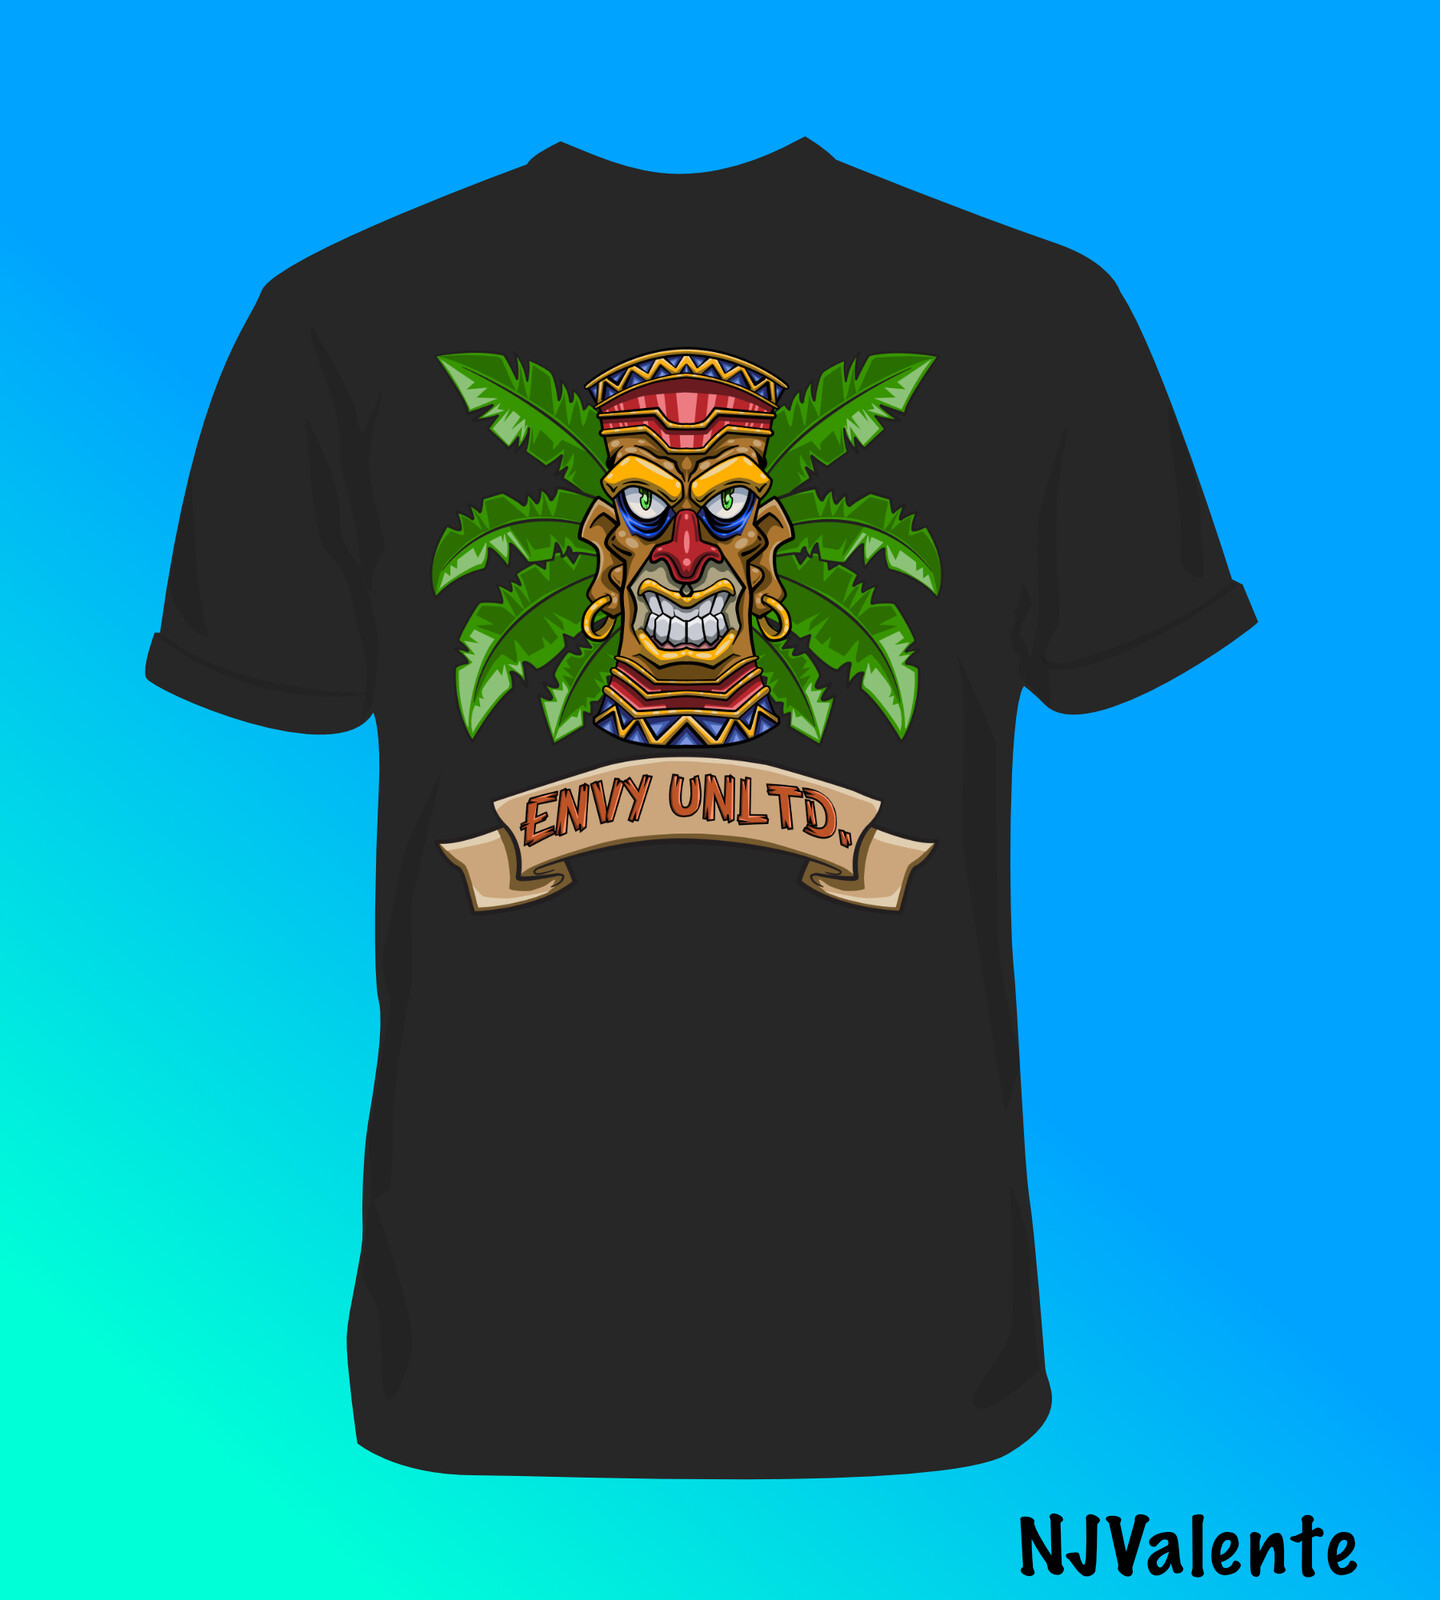 Tiki eNVy Unltd. T-shirt design mock up of shirt back.